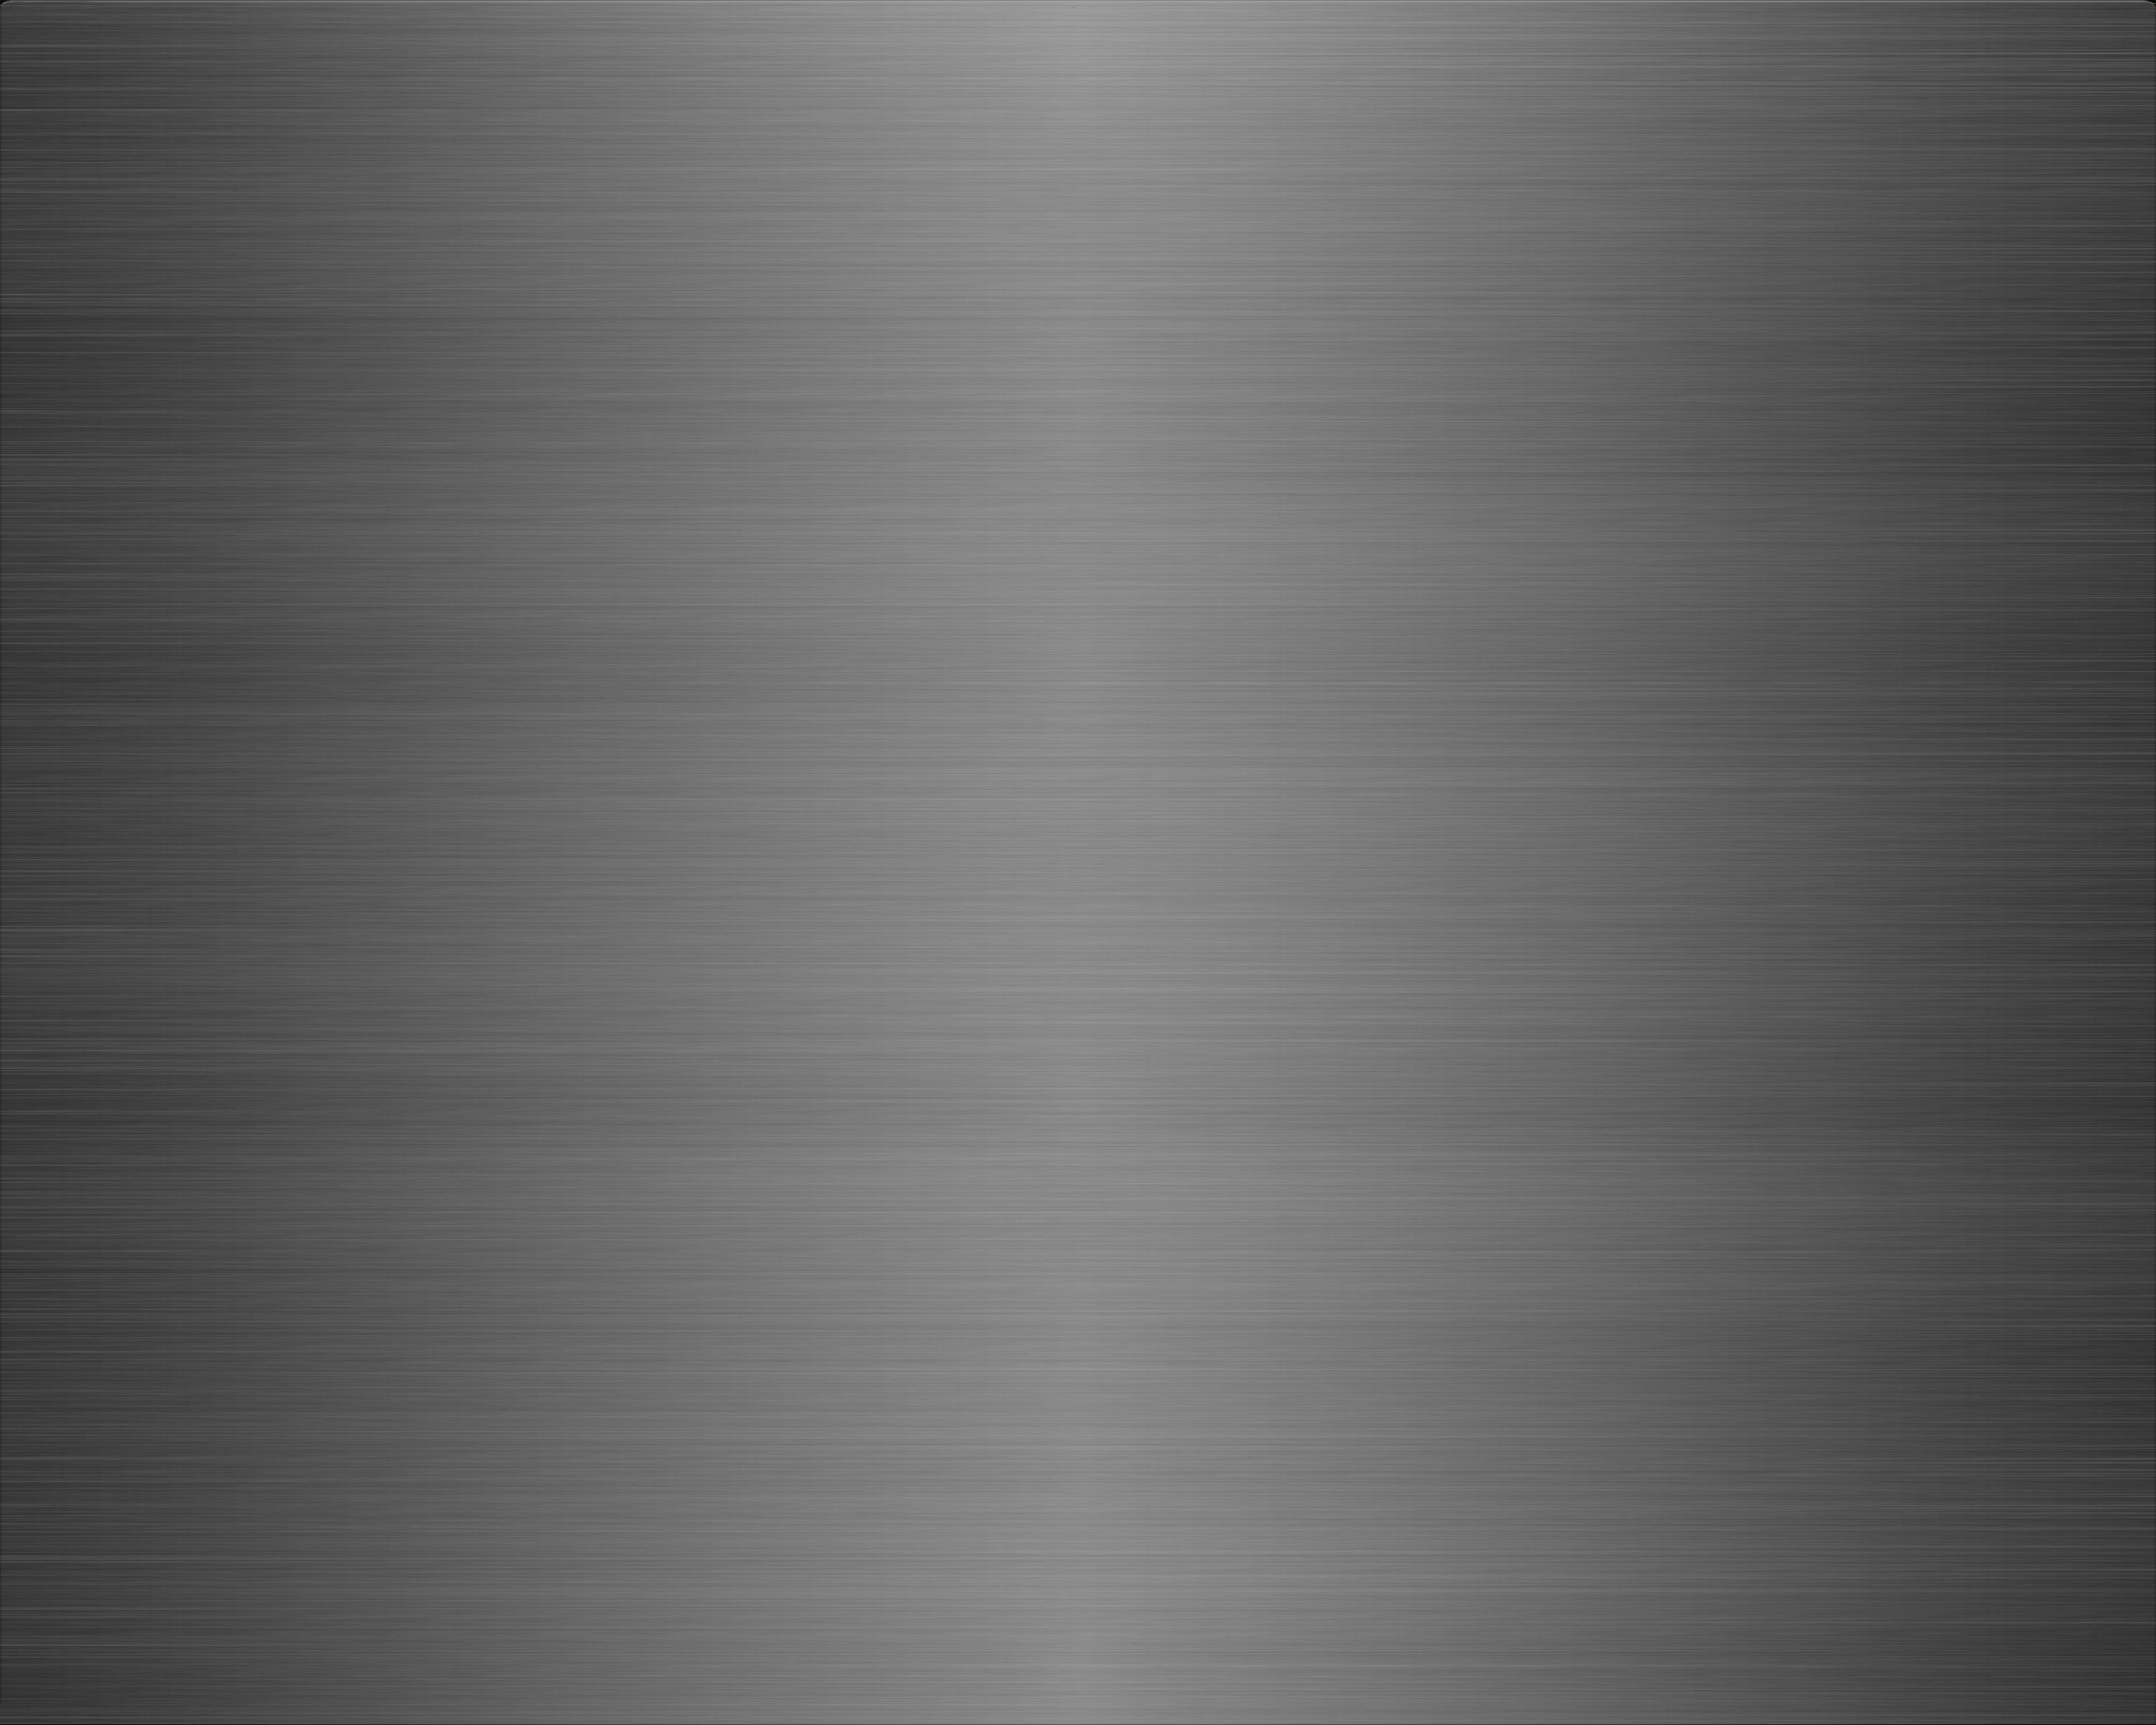 Wallpapers For Brushed Aluminum Background 1920x1080 Metal Texture Brushed Metal Texture Metallic Wallpaper